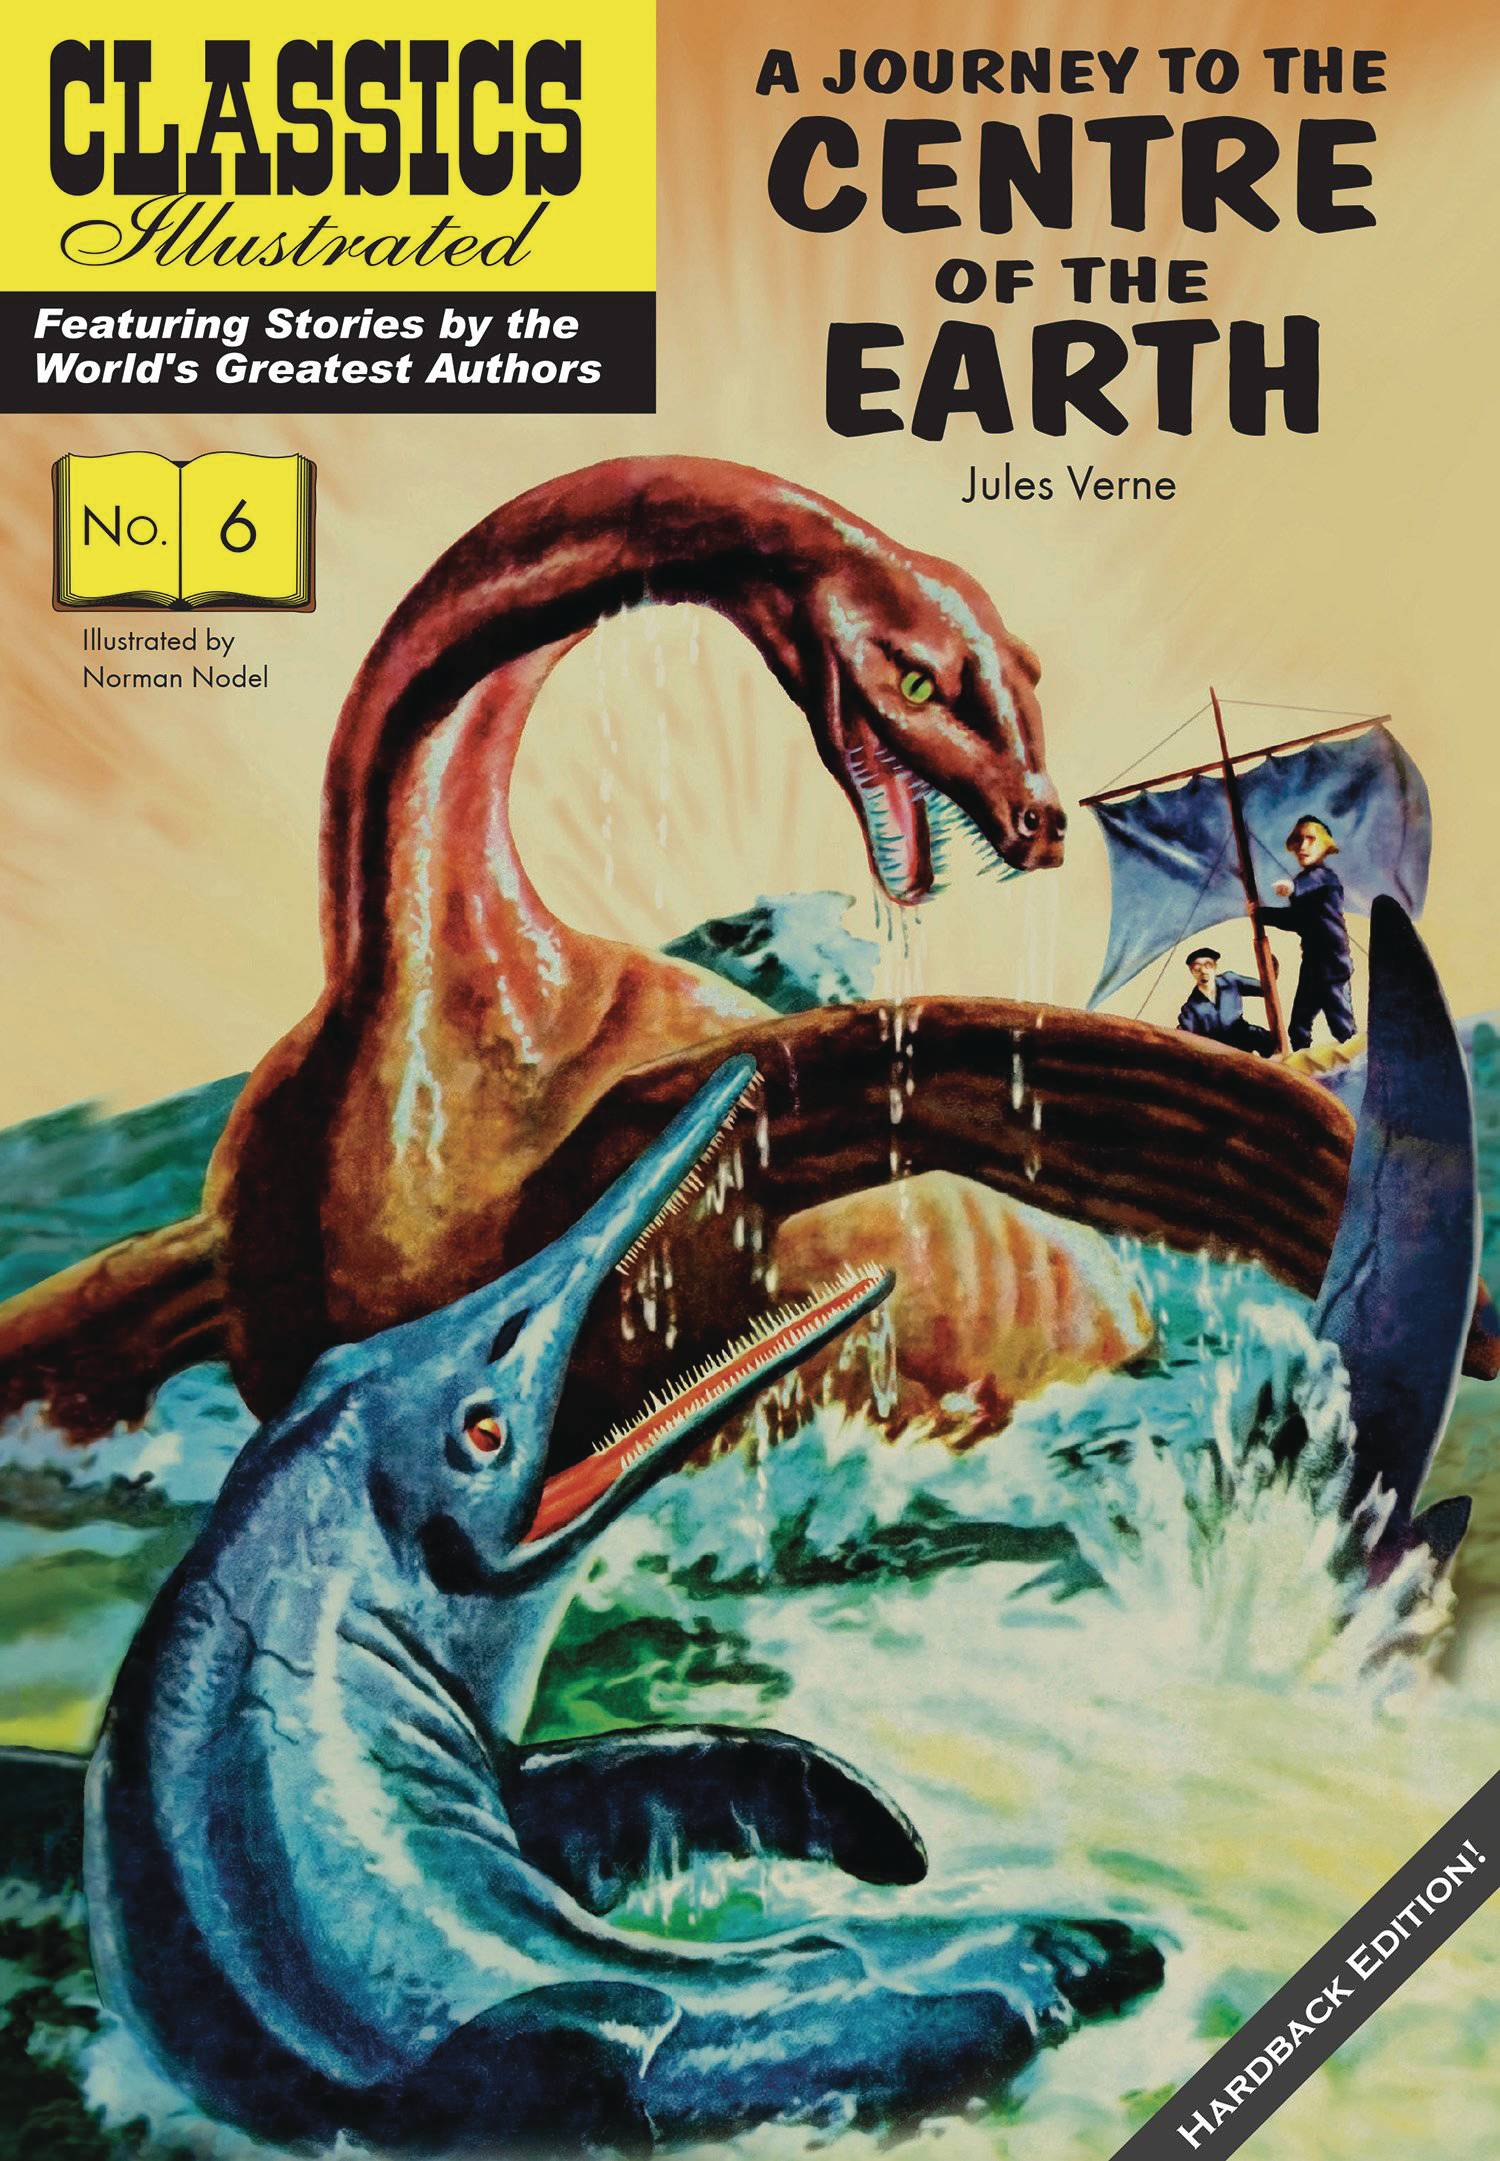 CLASSIC ILLUSTRATED REPLICA ED HC JOURNEY TO CENTER OF EARTH.jpg